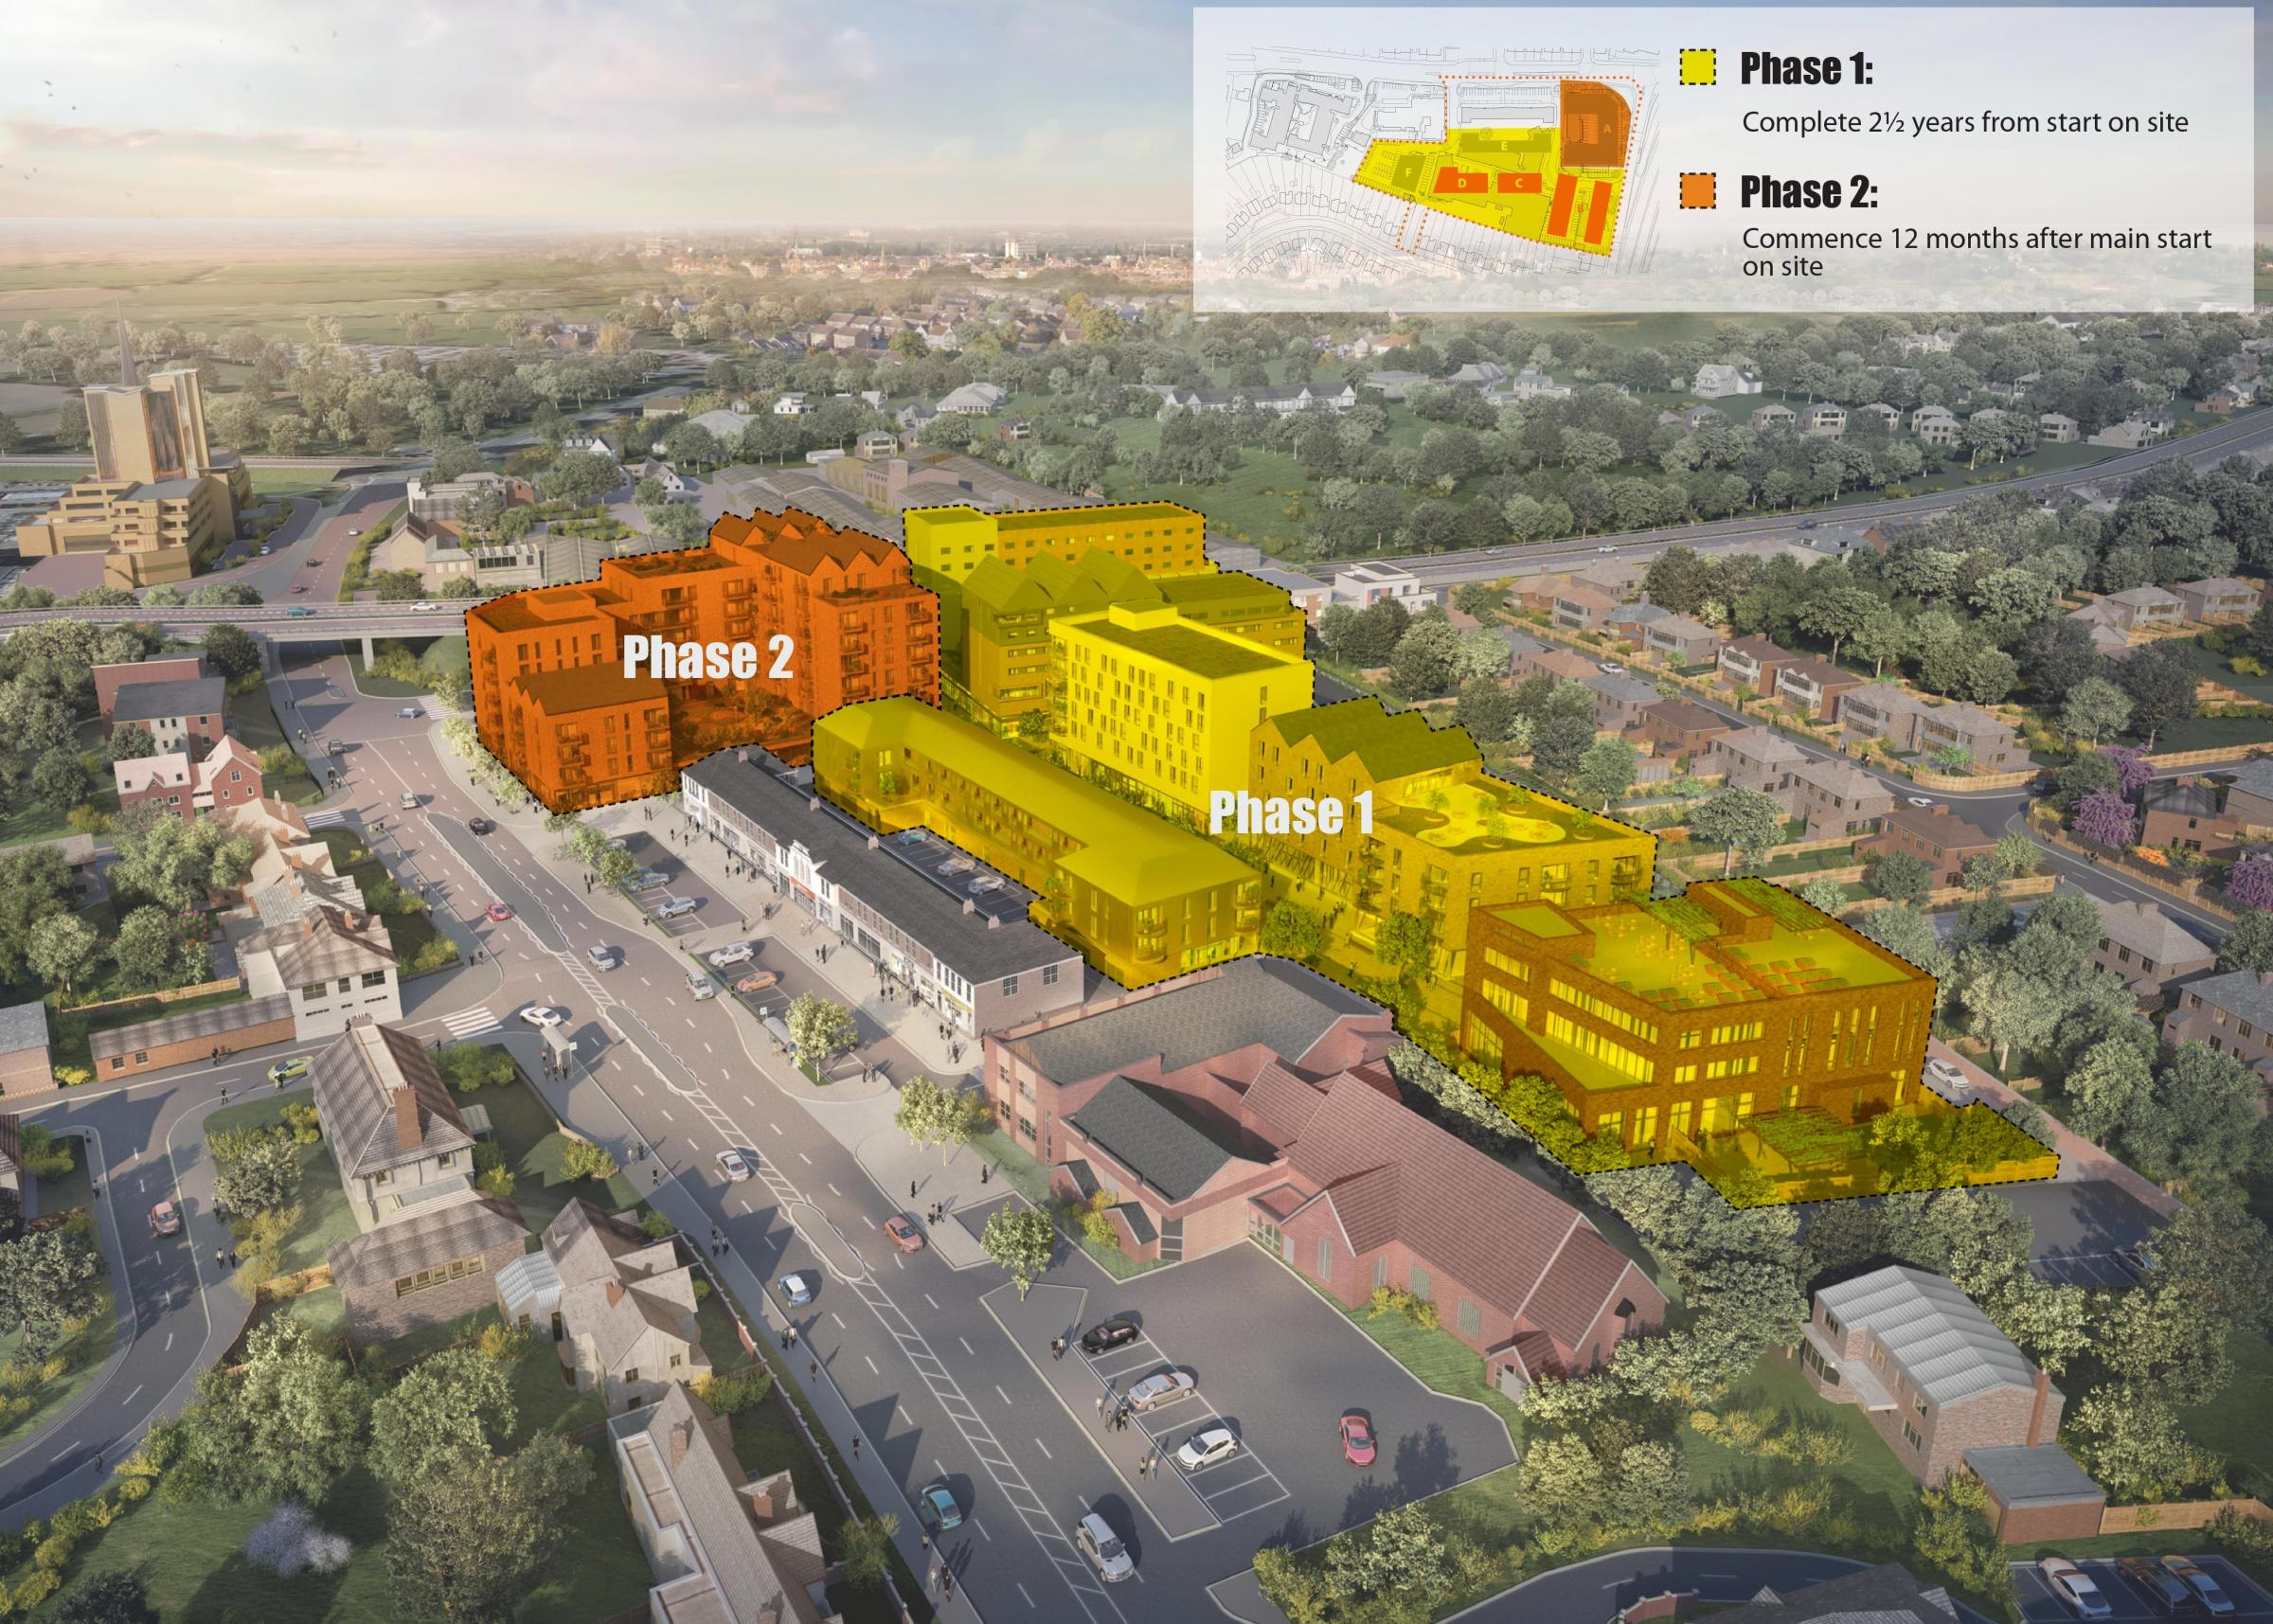 The new phasing proposals for the West Way Shopping Centre re-development. Picture: MACE..